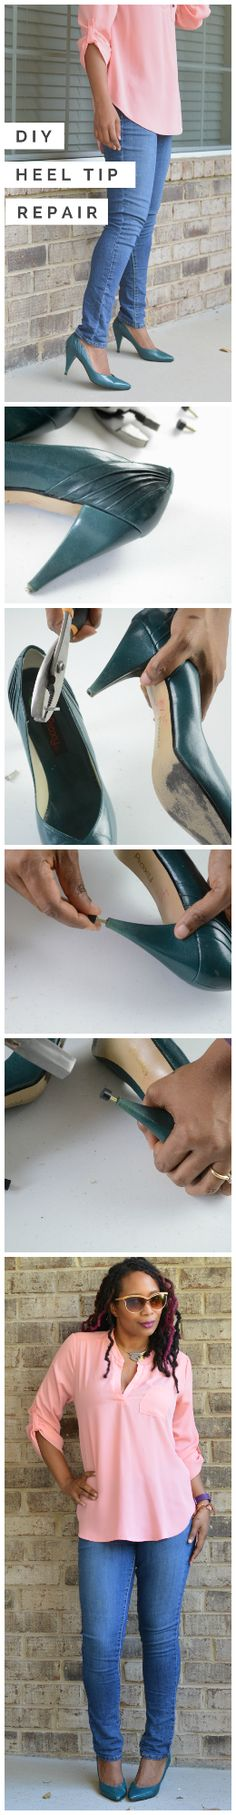 diy heel tip repair, fixing broken high heel caps, easy to do at home saving time and money, fix vintage thrift store shoes | Thriftanista in the City